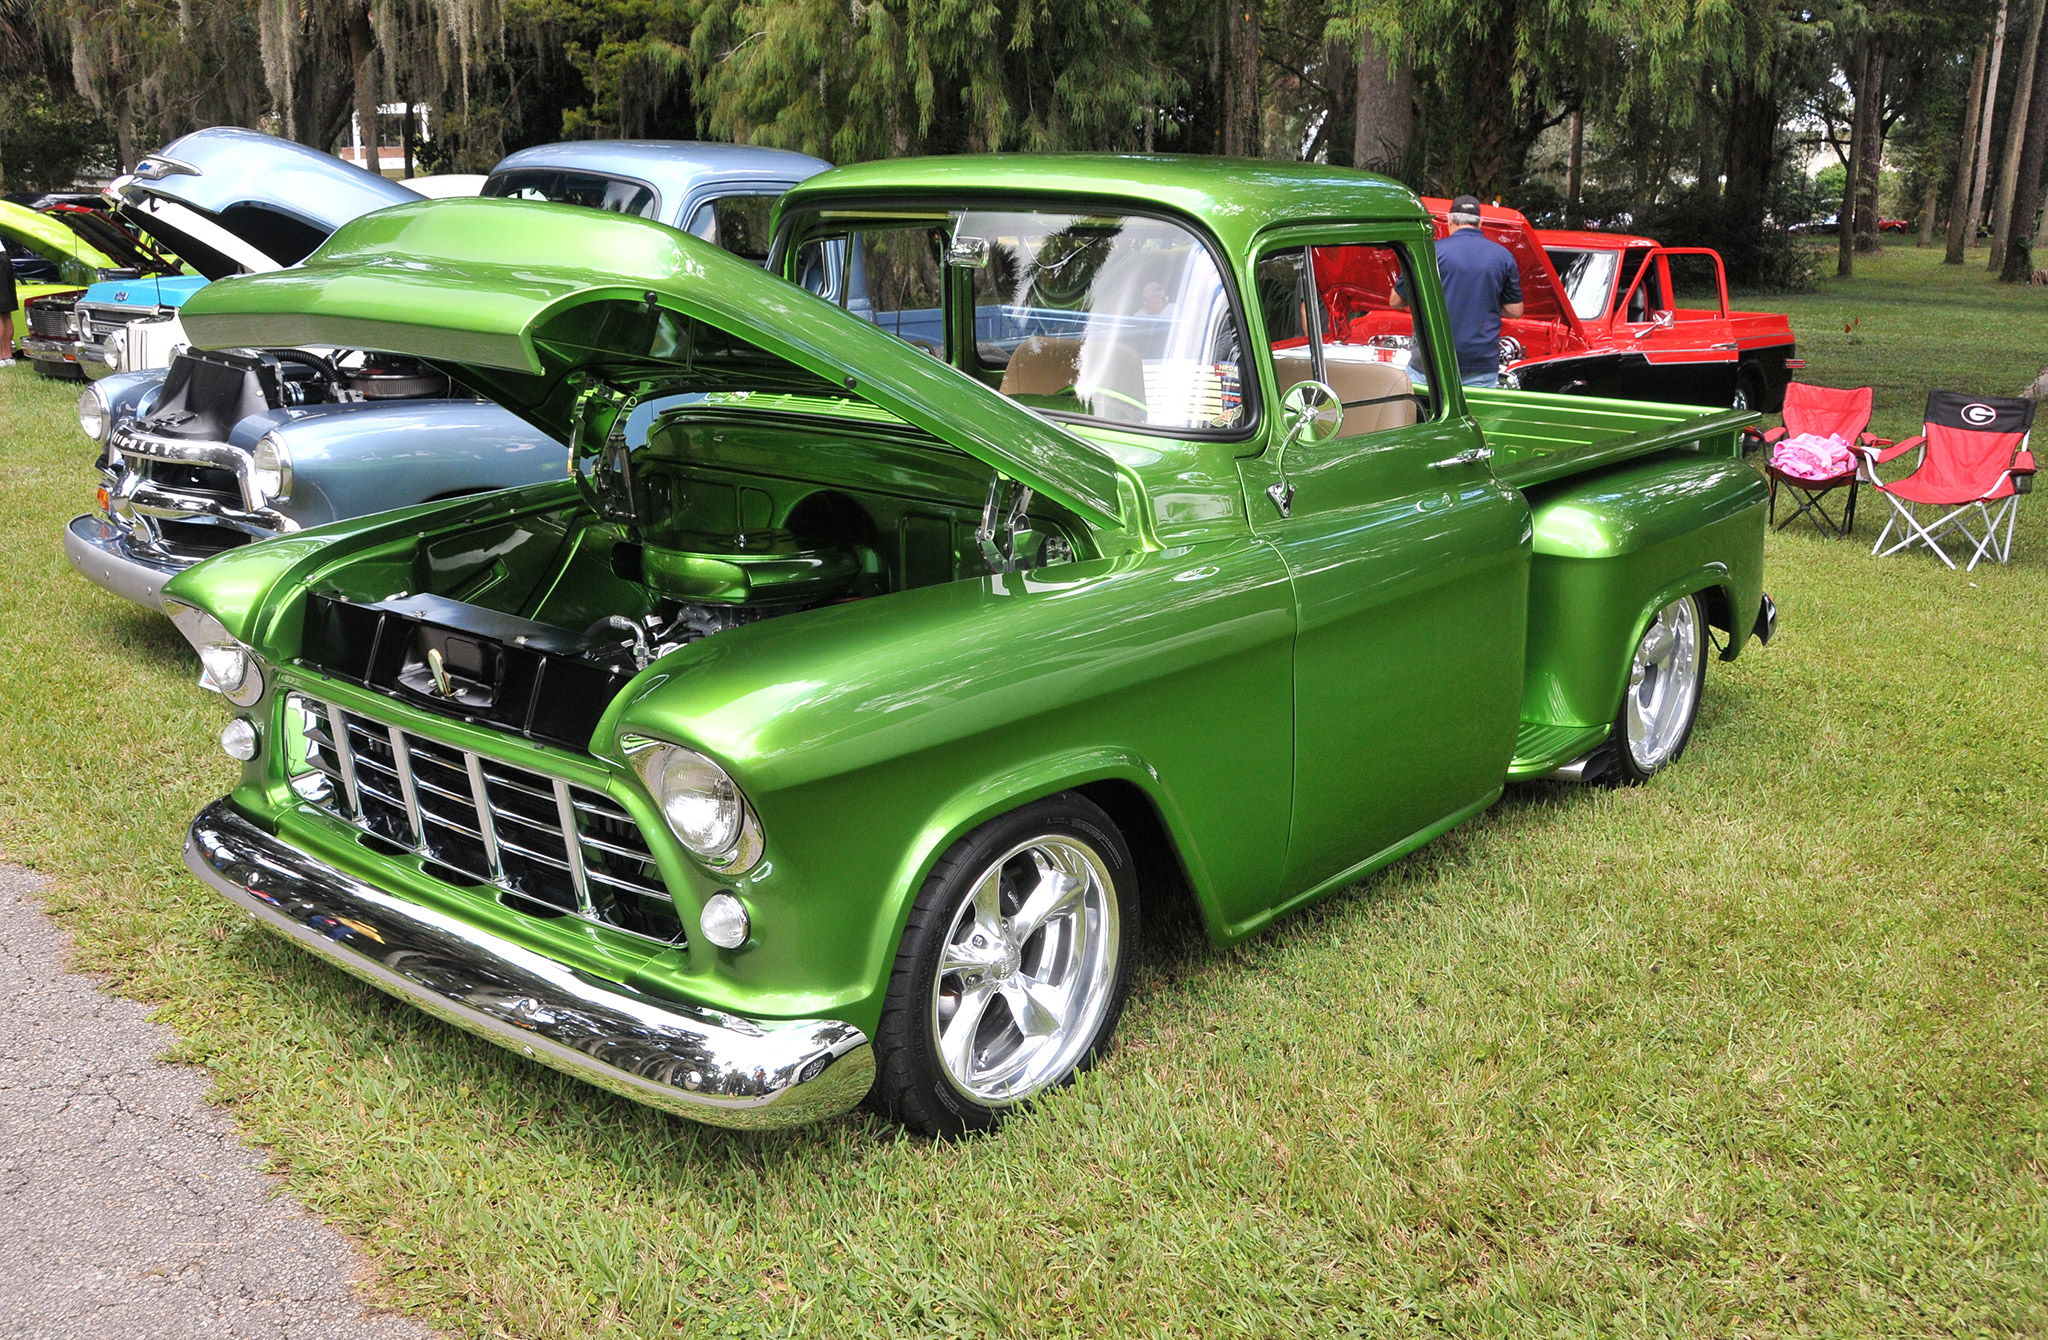 Running a 383 stroker under the hood, this gorgeous, full custom '55 Chevy pickup is owned by Michael Bigelow. The truck won its class.